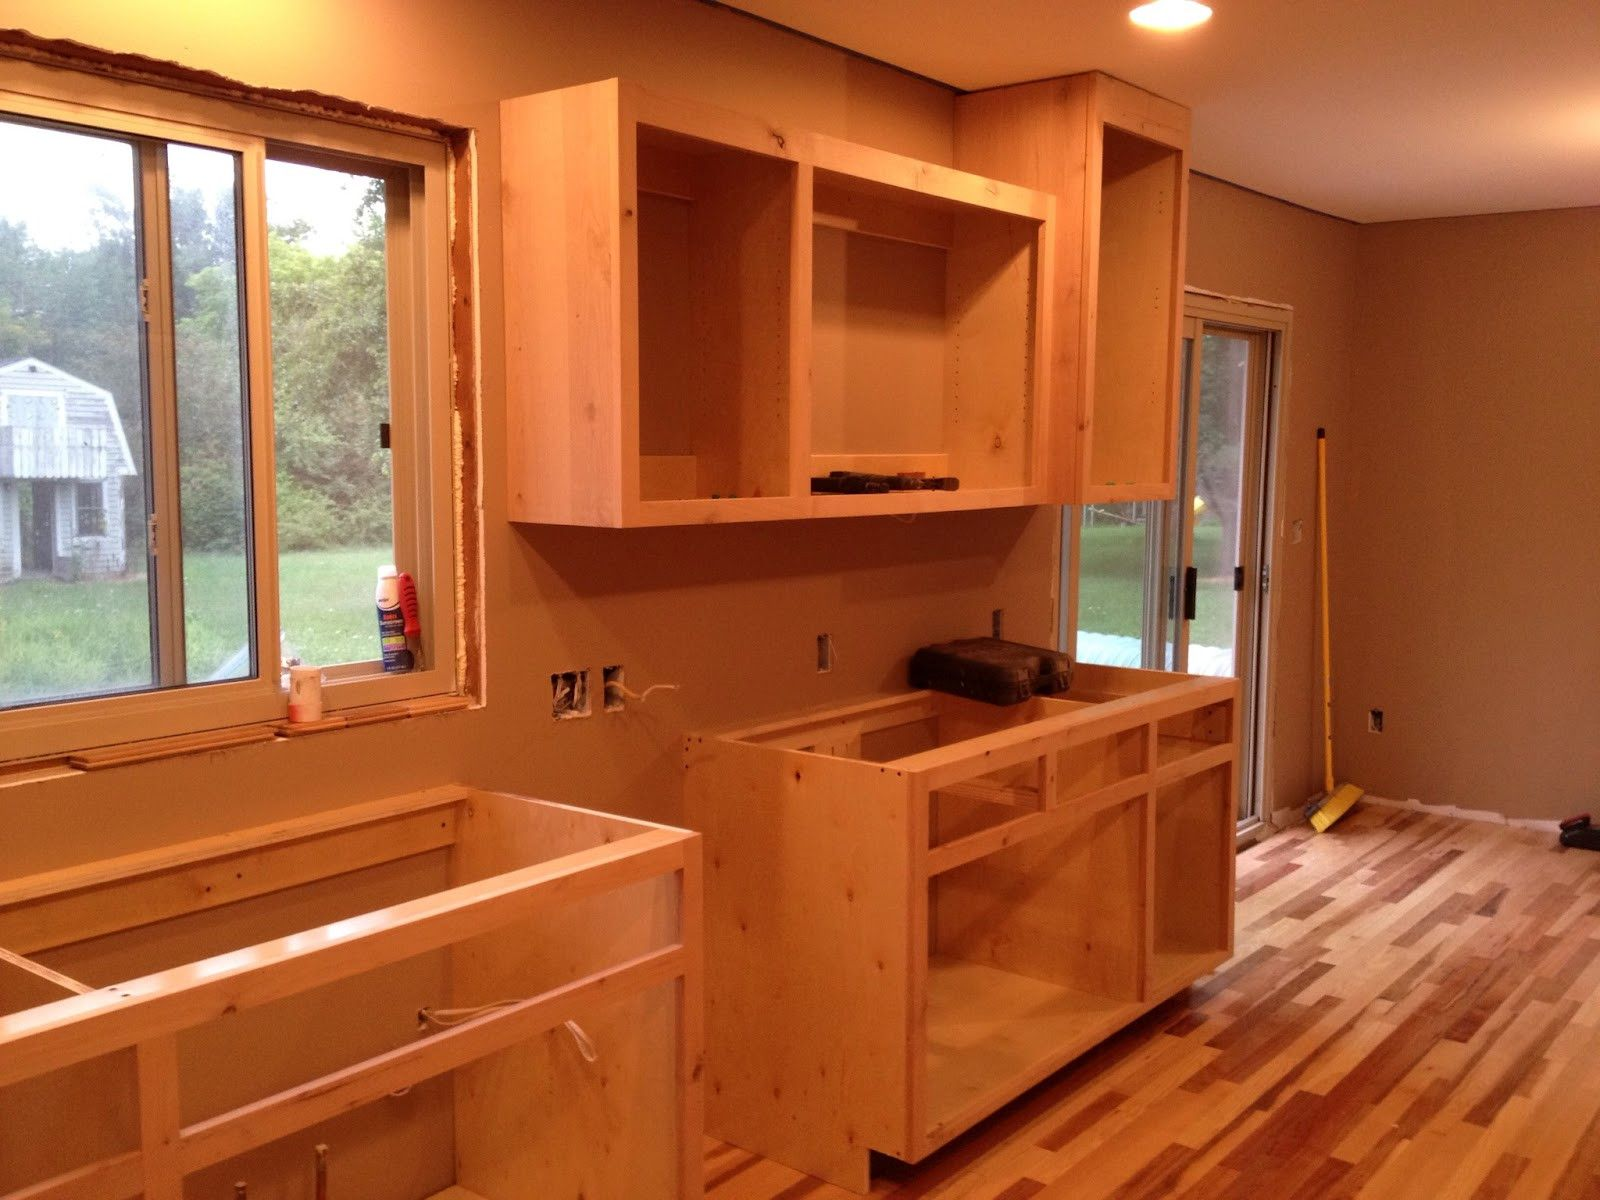 55 Easy Way To Make Own Kitchen Cabinets Kitchen Remodeling Ideas On A Small Budget Building Kitchen Cabinets Simple Kitchen Cabinets Kitchen Cabinet Plans